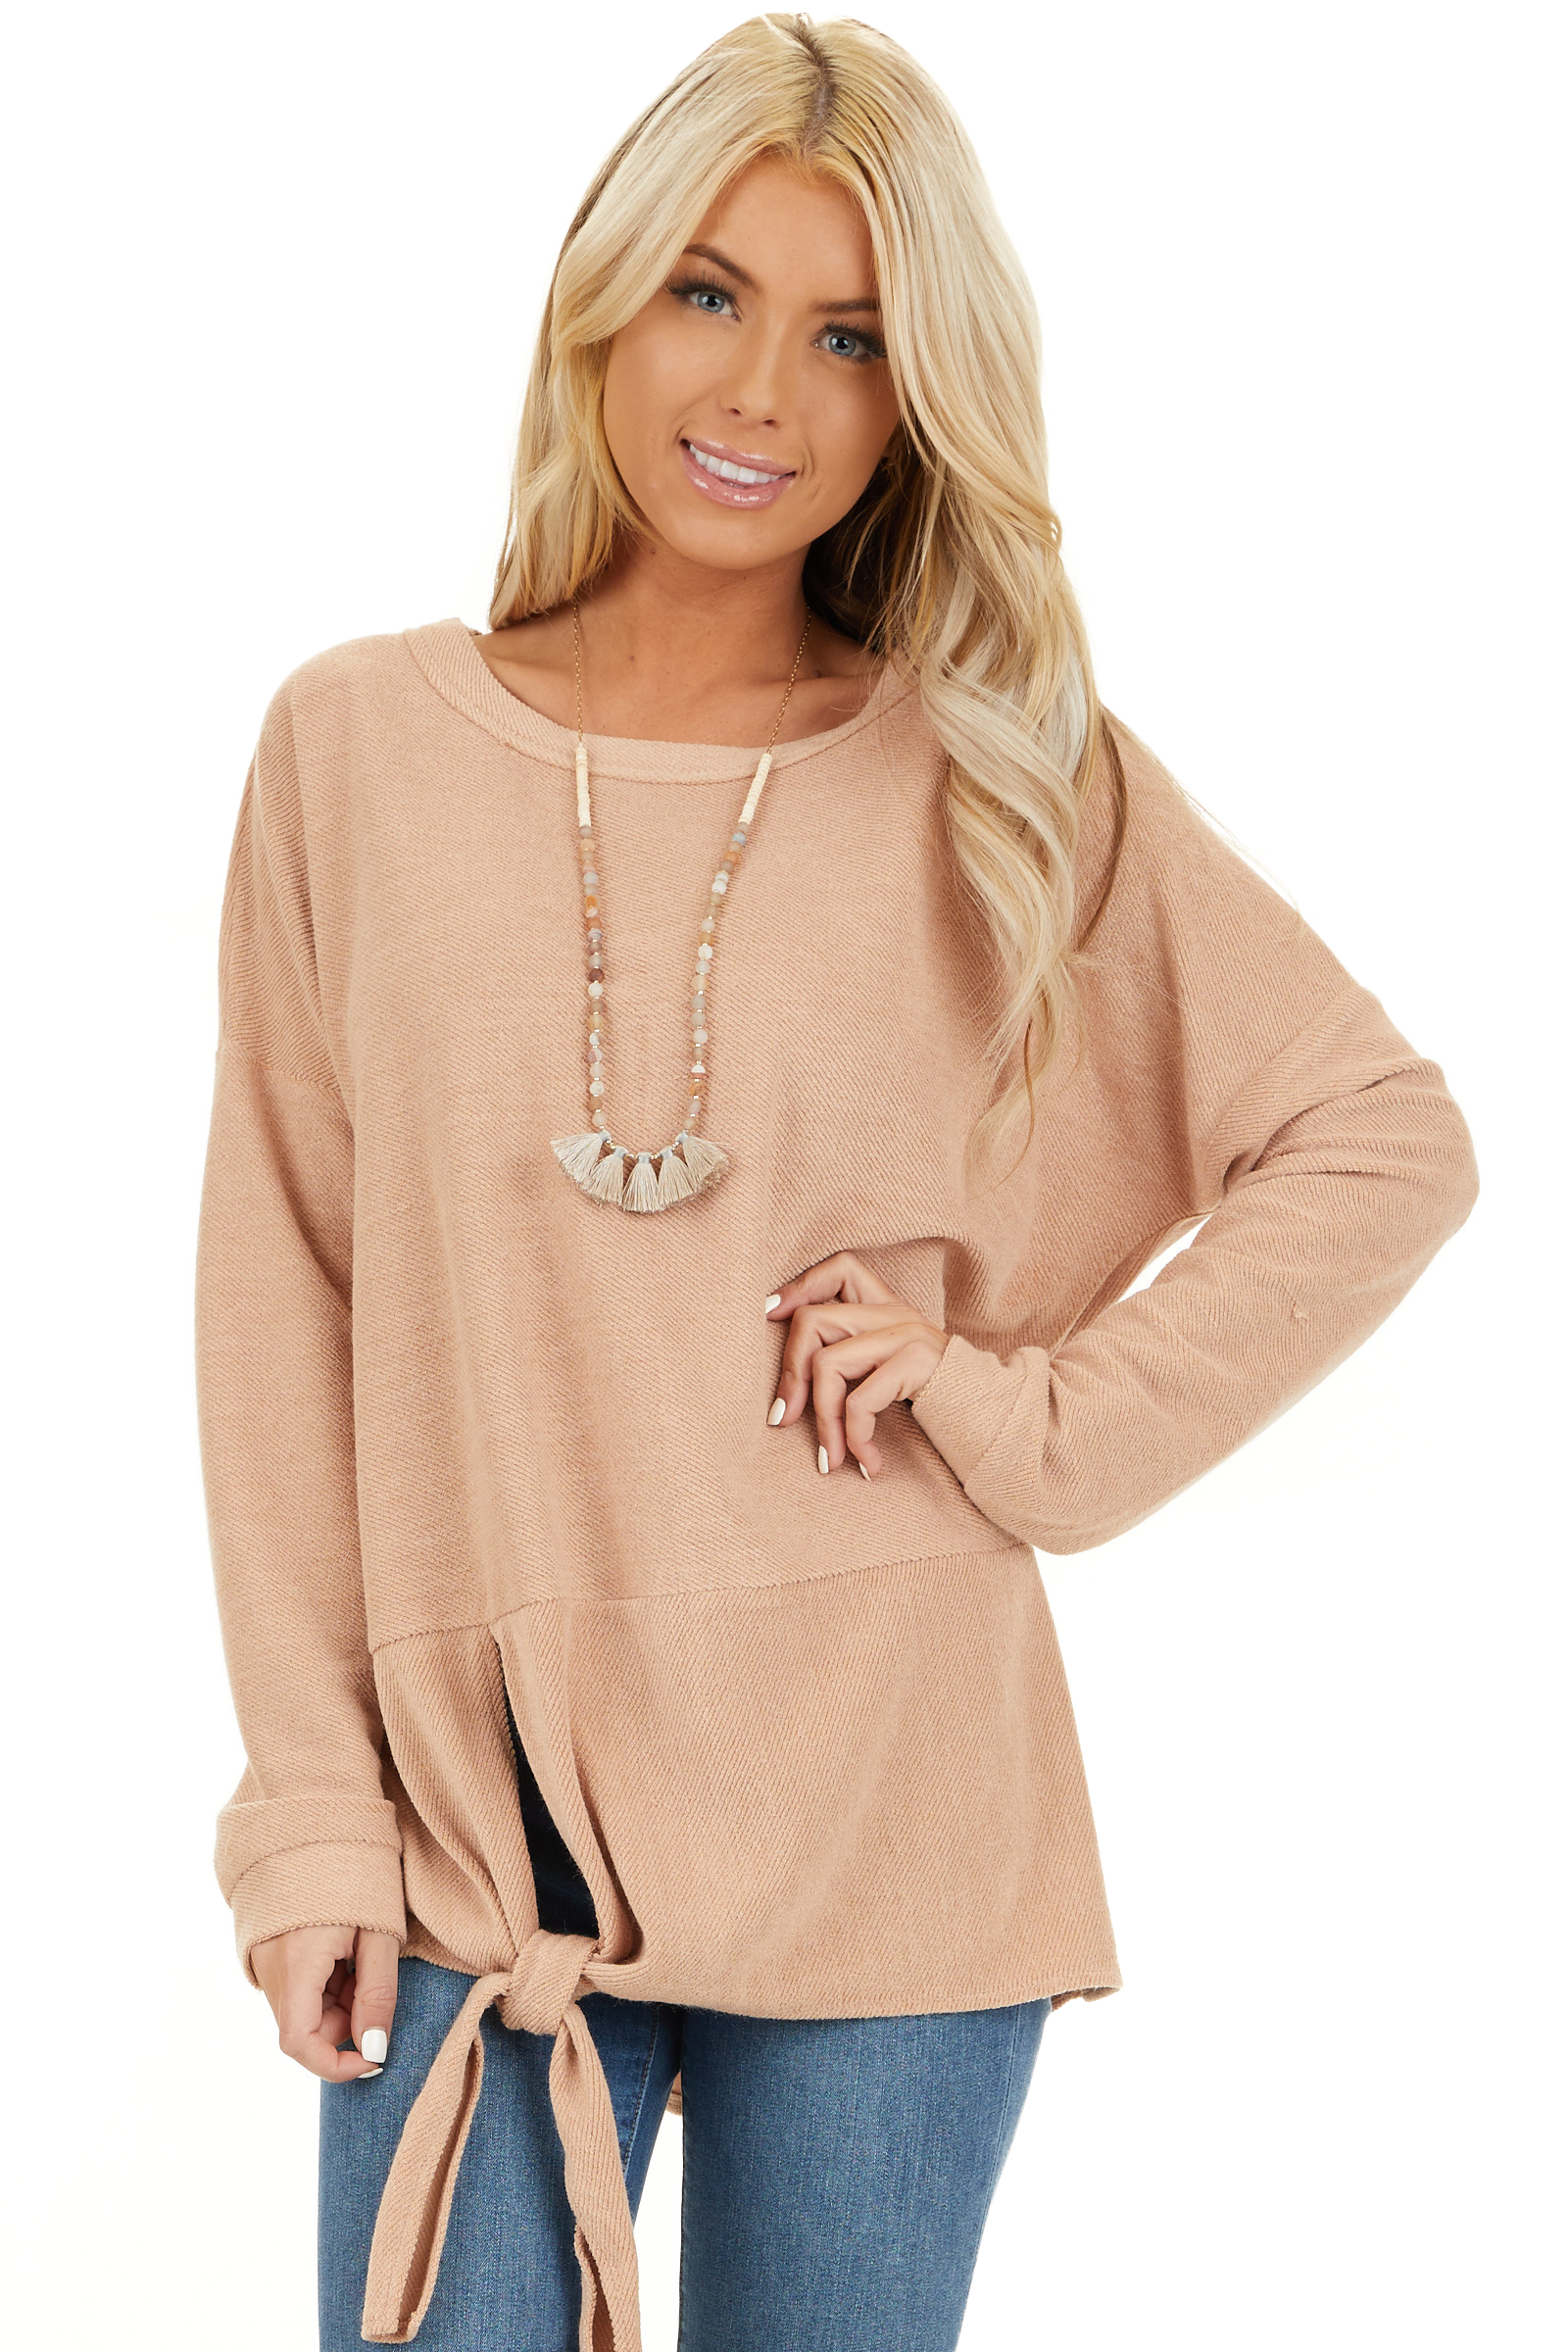 Camel Super Soft Long Sleeve Knit Top with Front Tie closeup